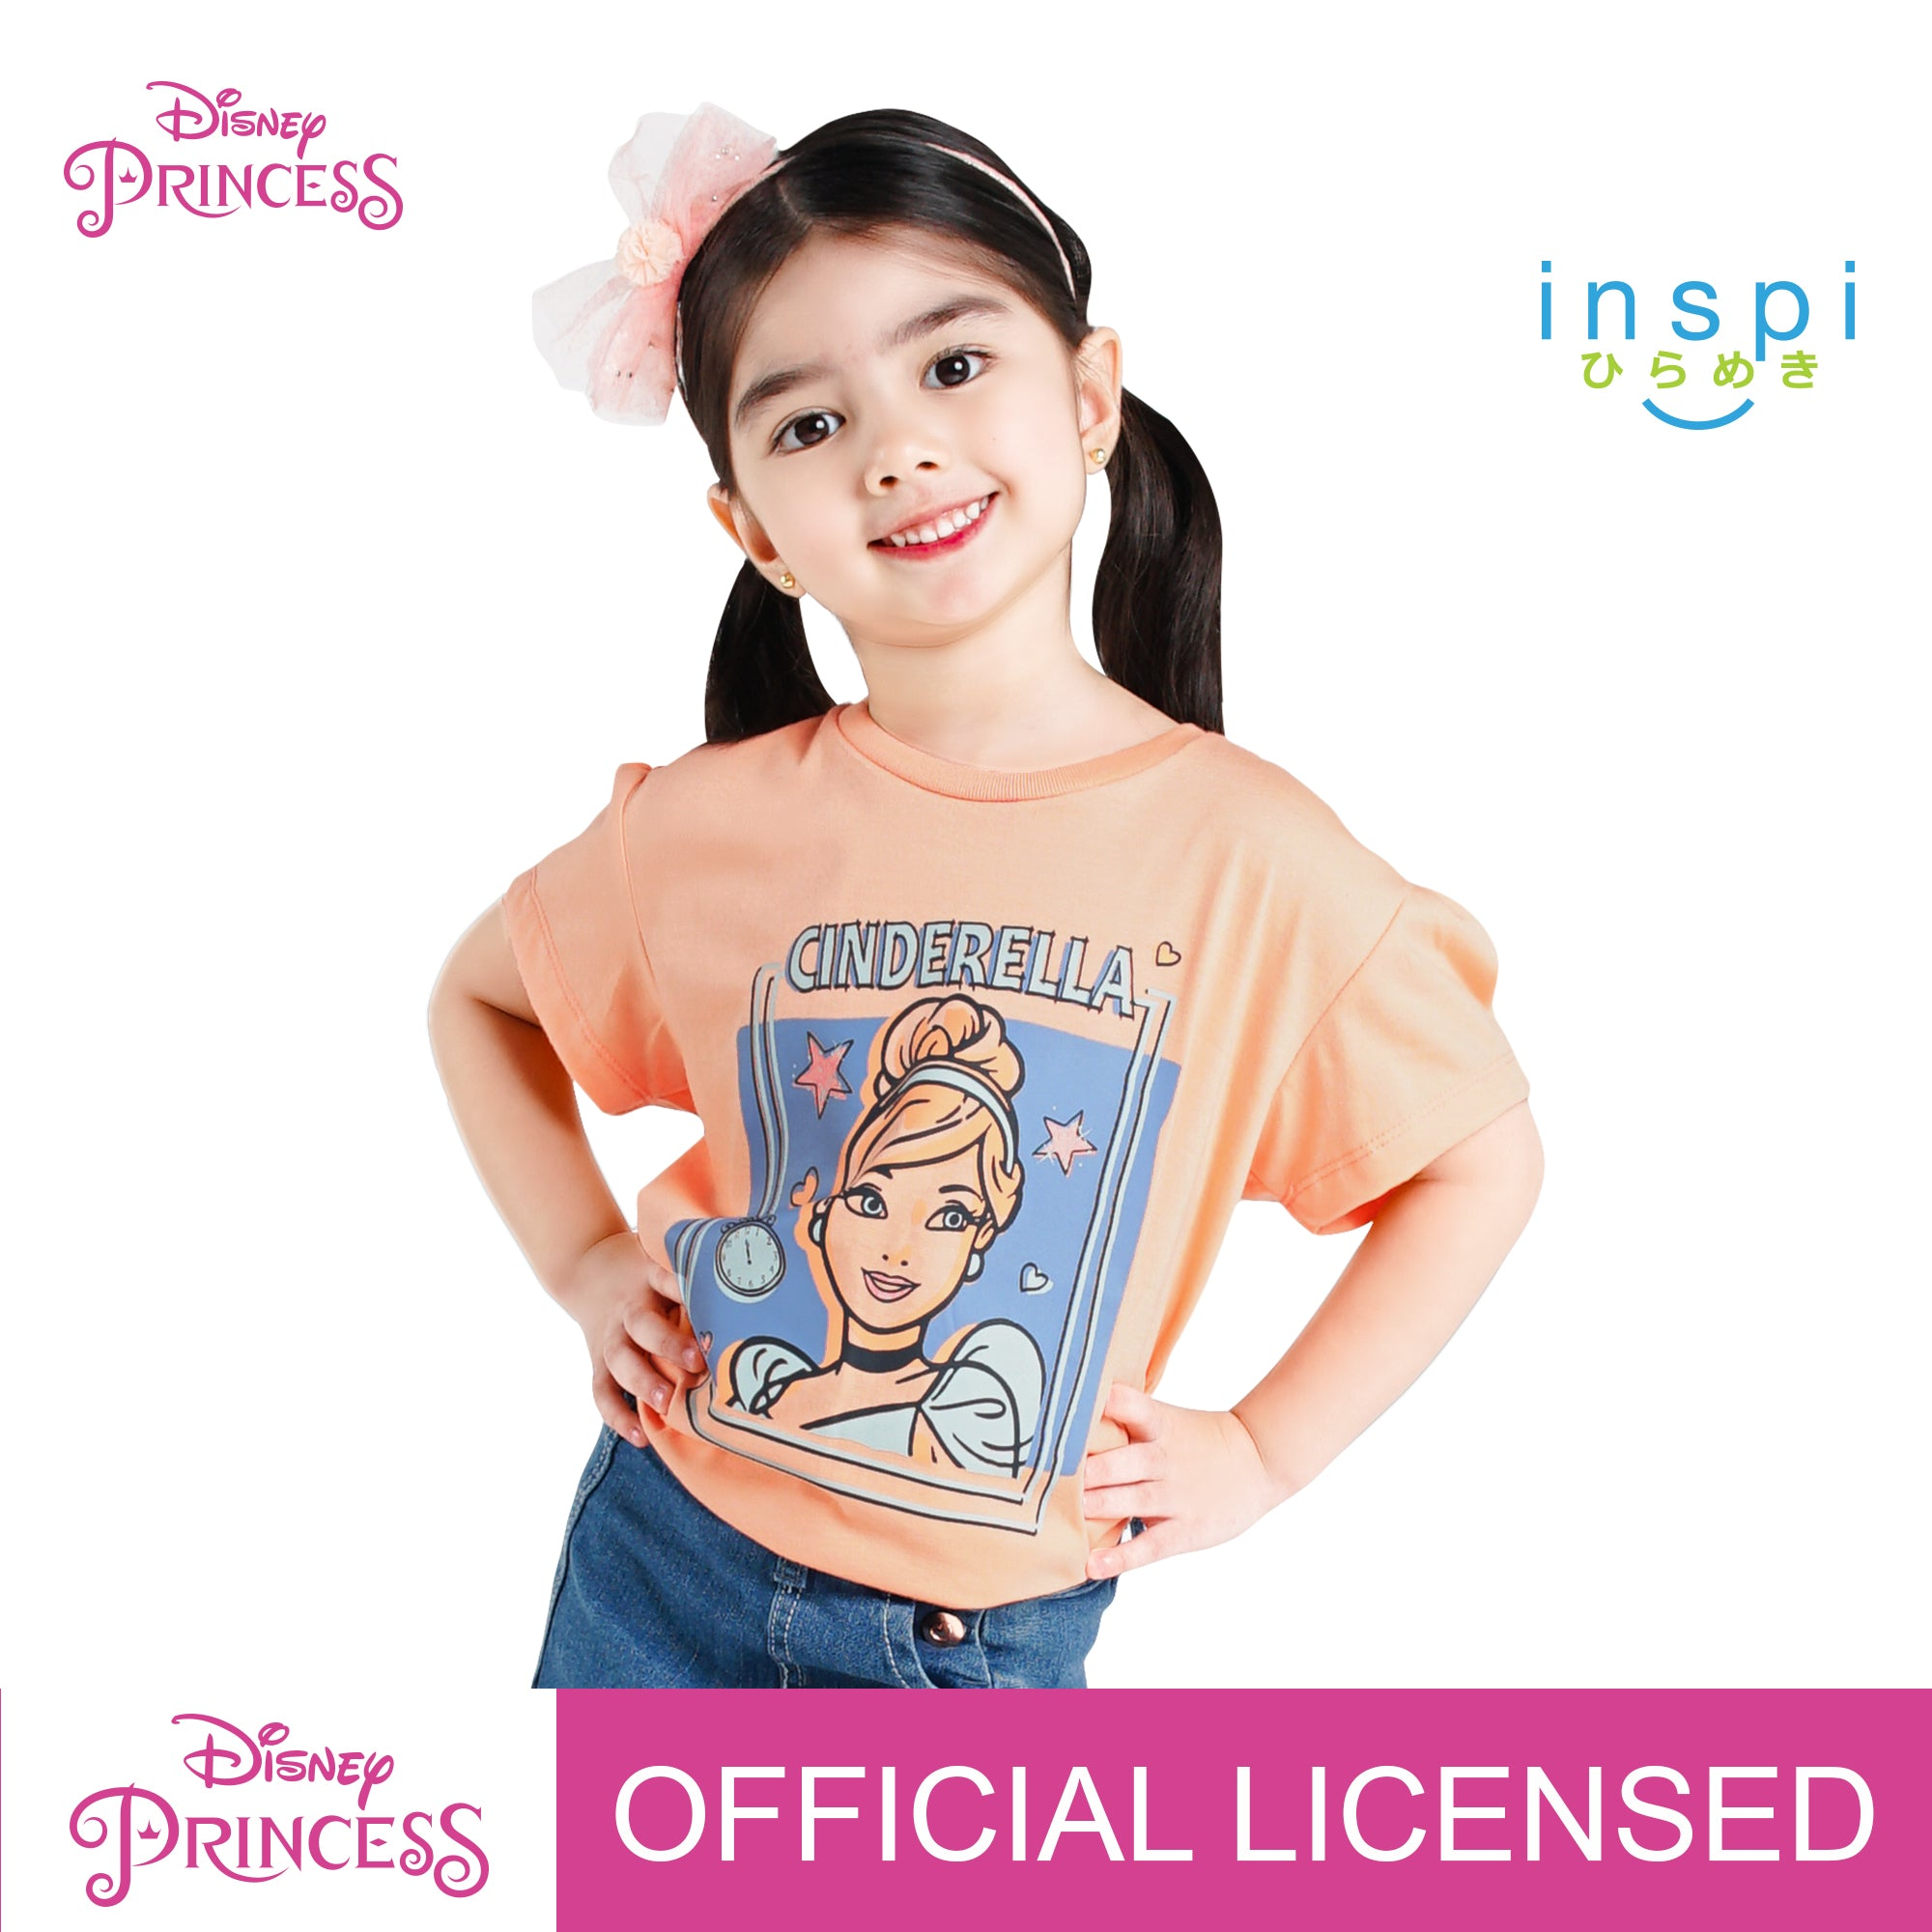 Disney Princess Cinderella Portrait Tshirt in Sorbet for Girls Inspi Shirt